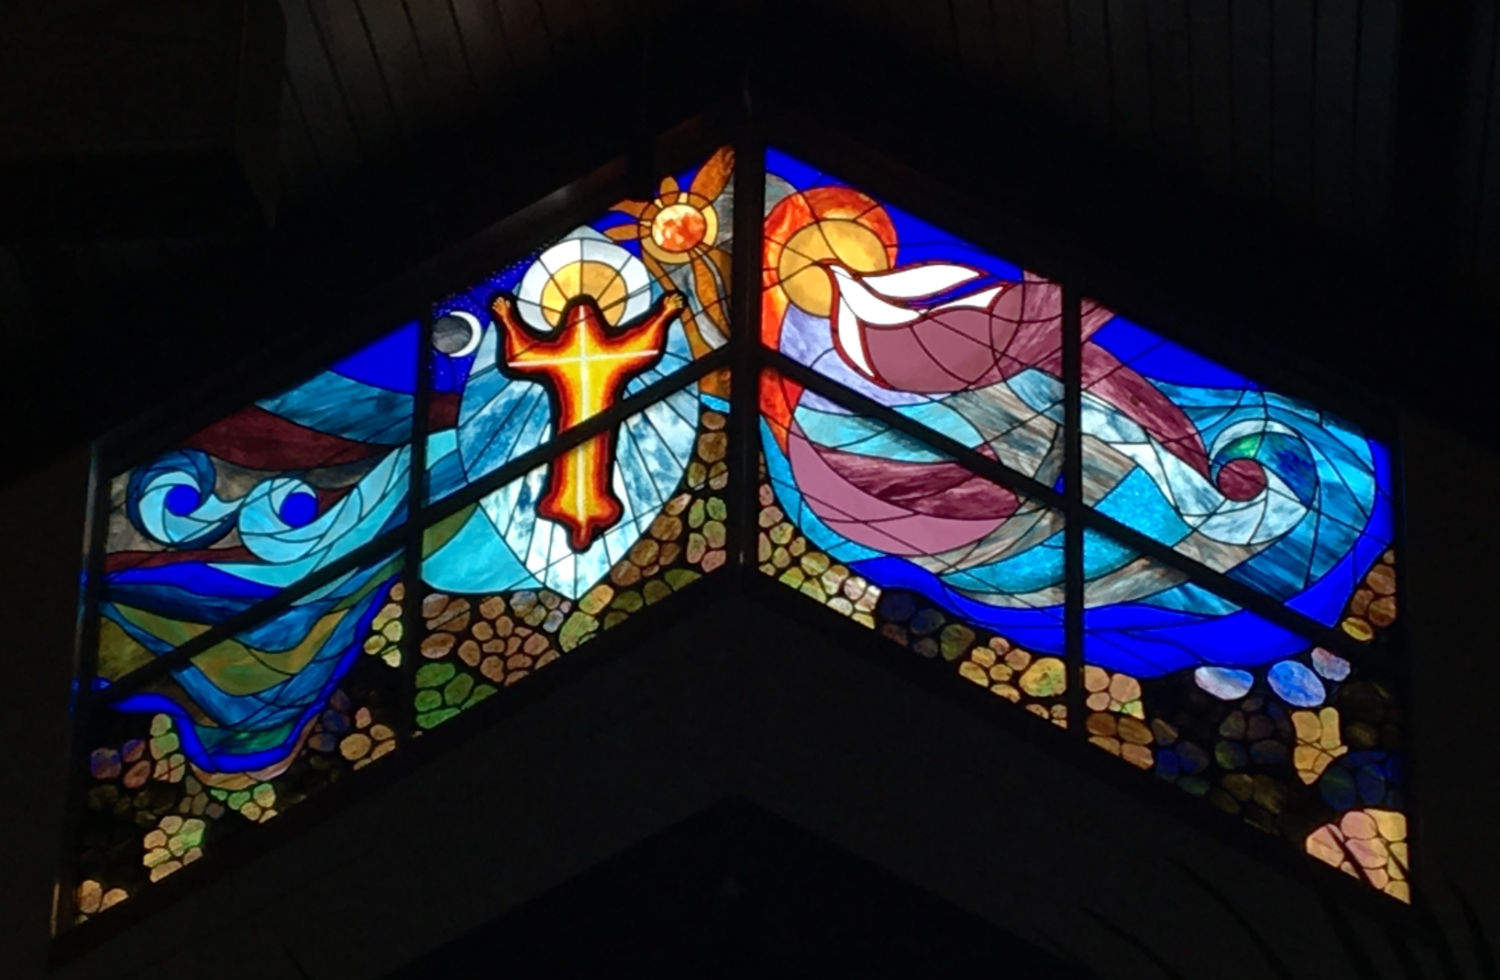 st_gabriel_stained_glass